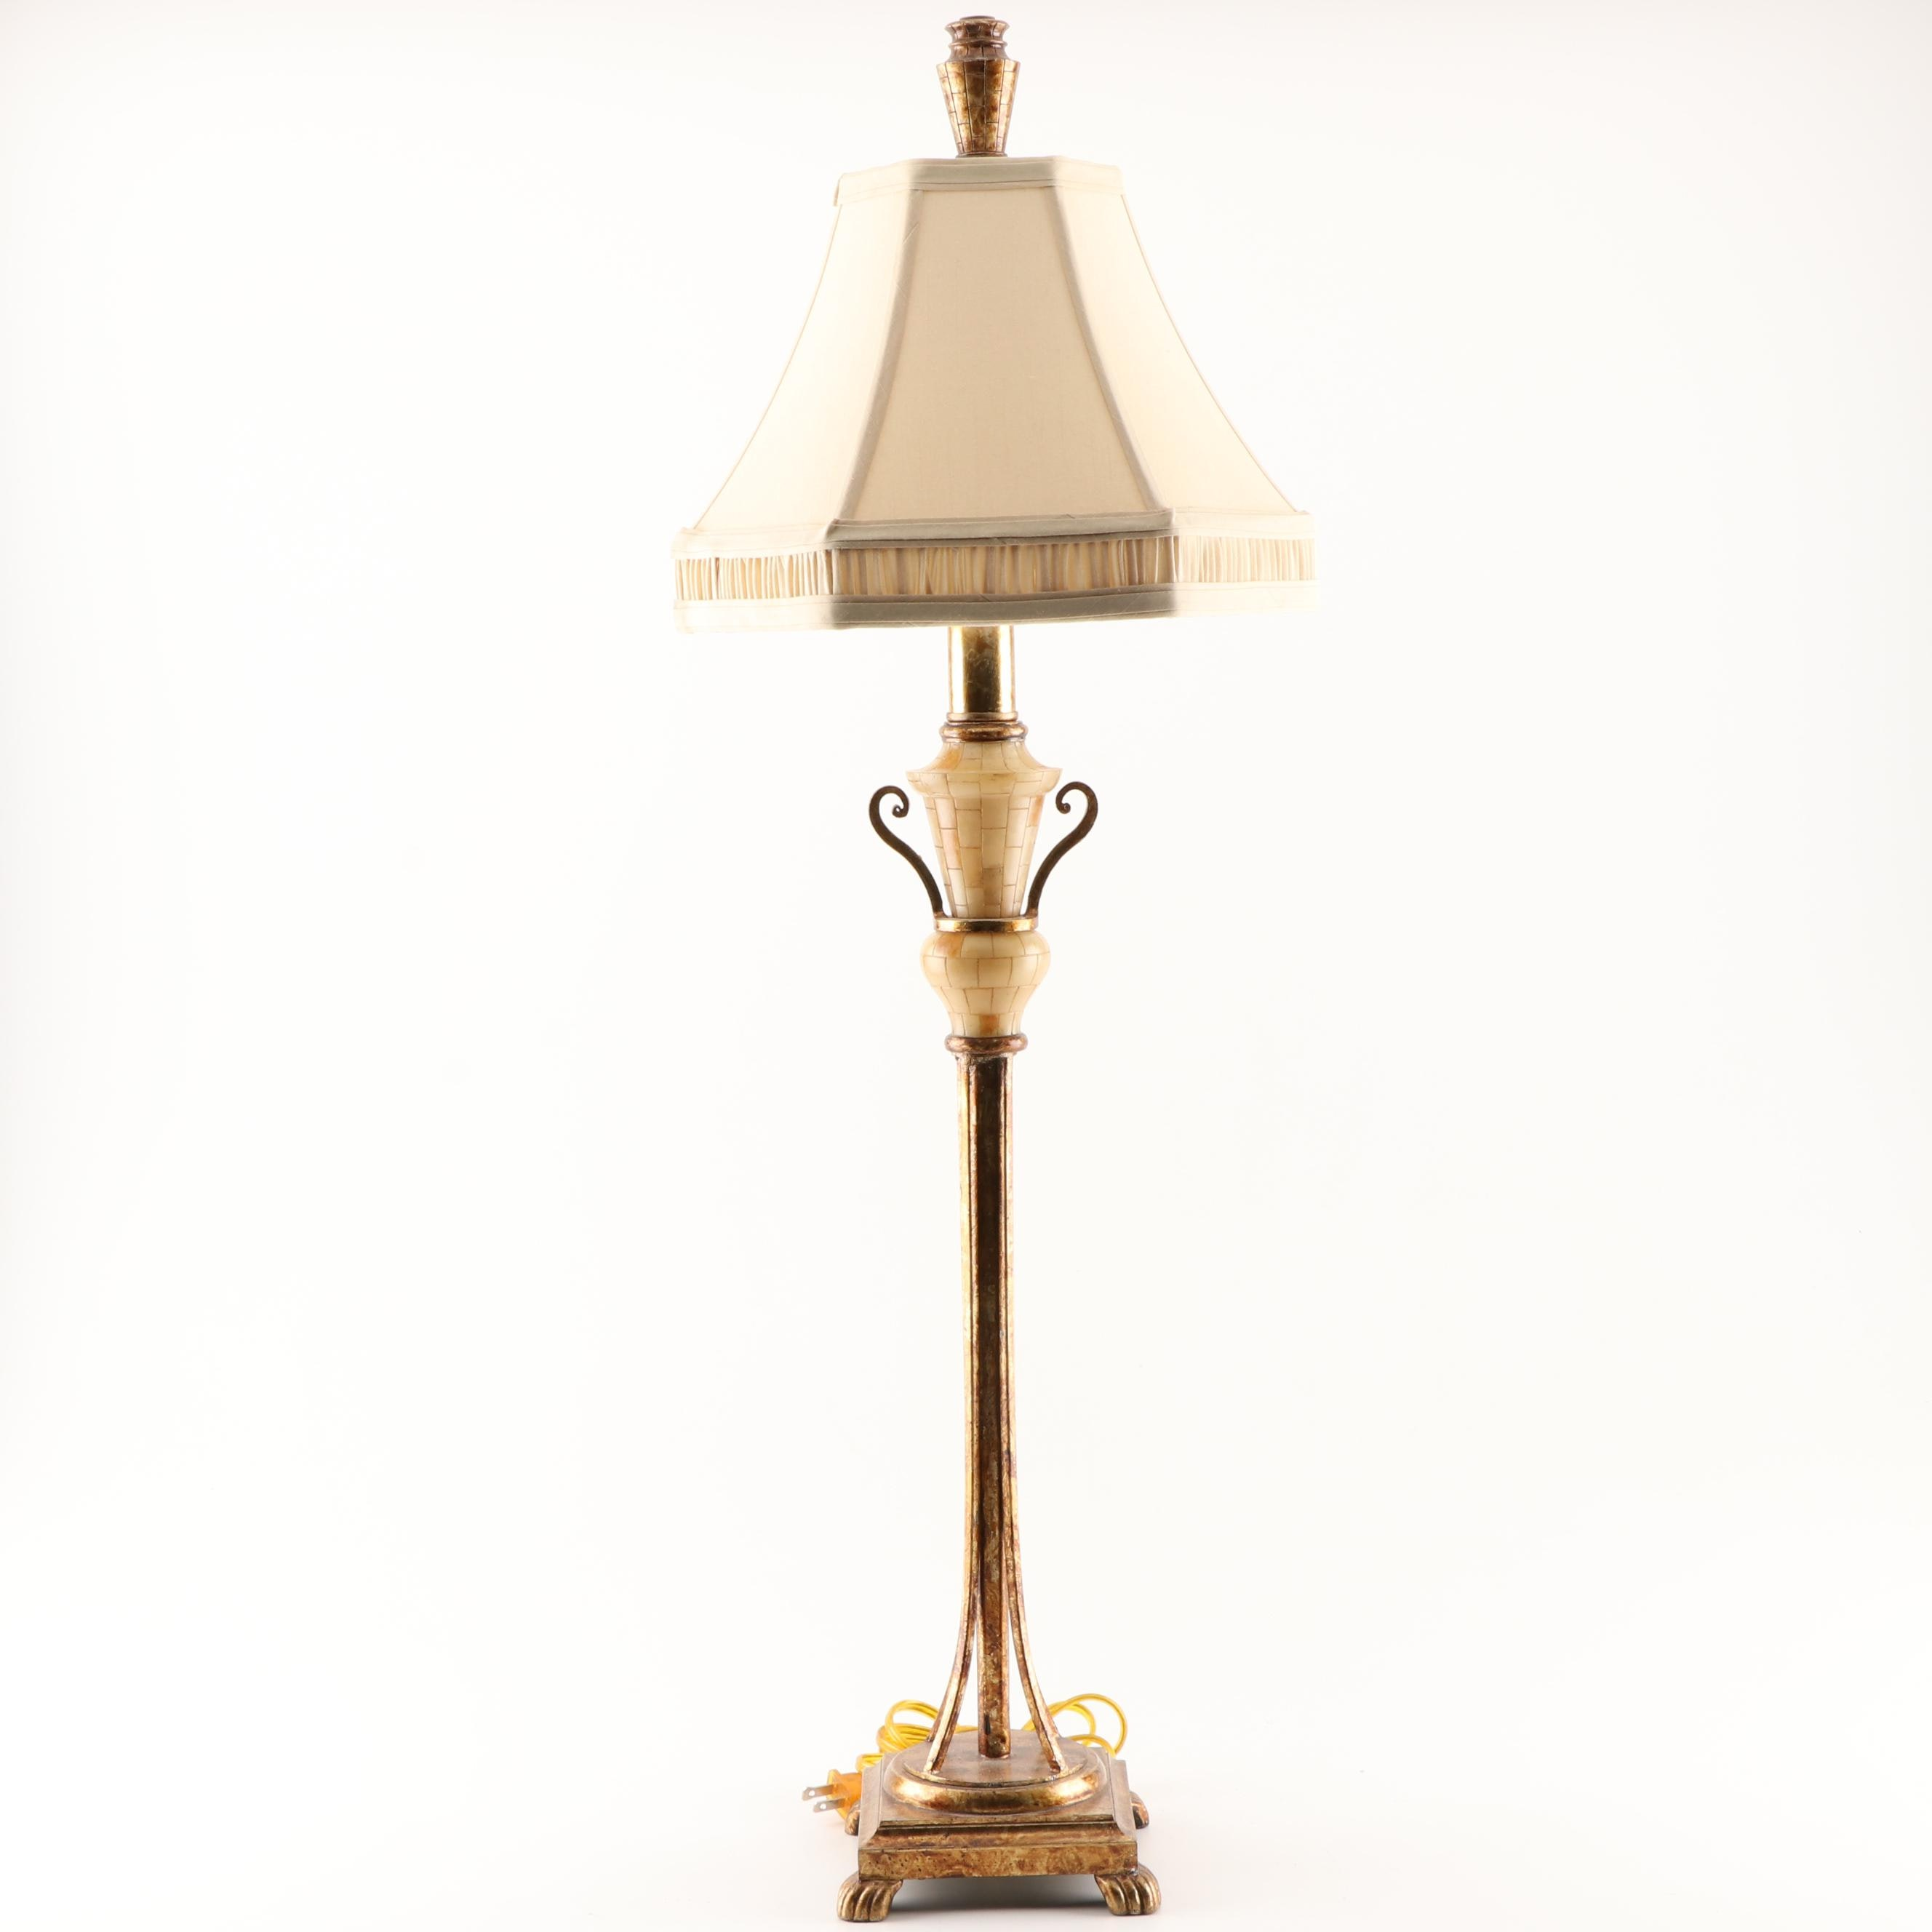 Contemporary Neoclassical Table Lamp